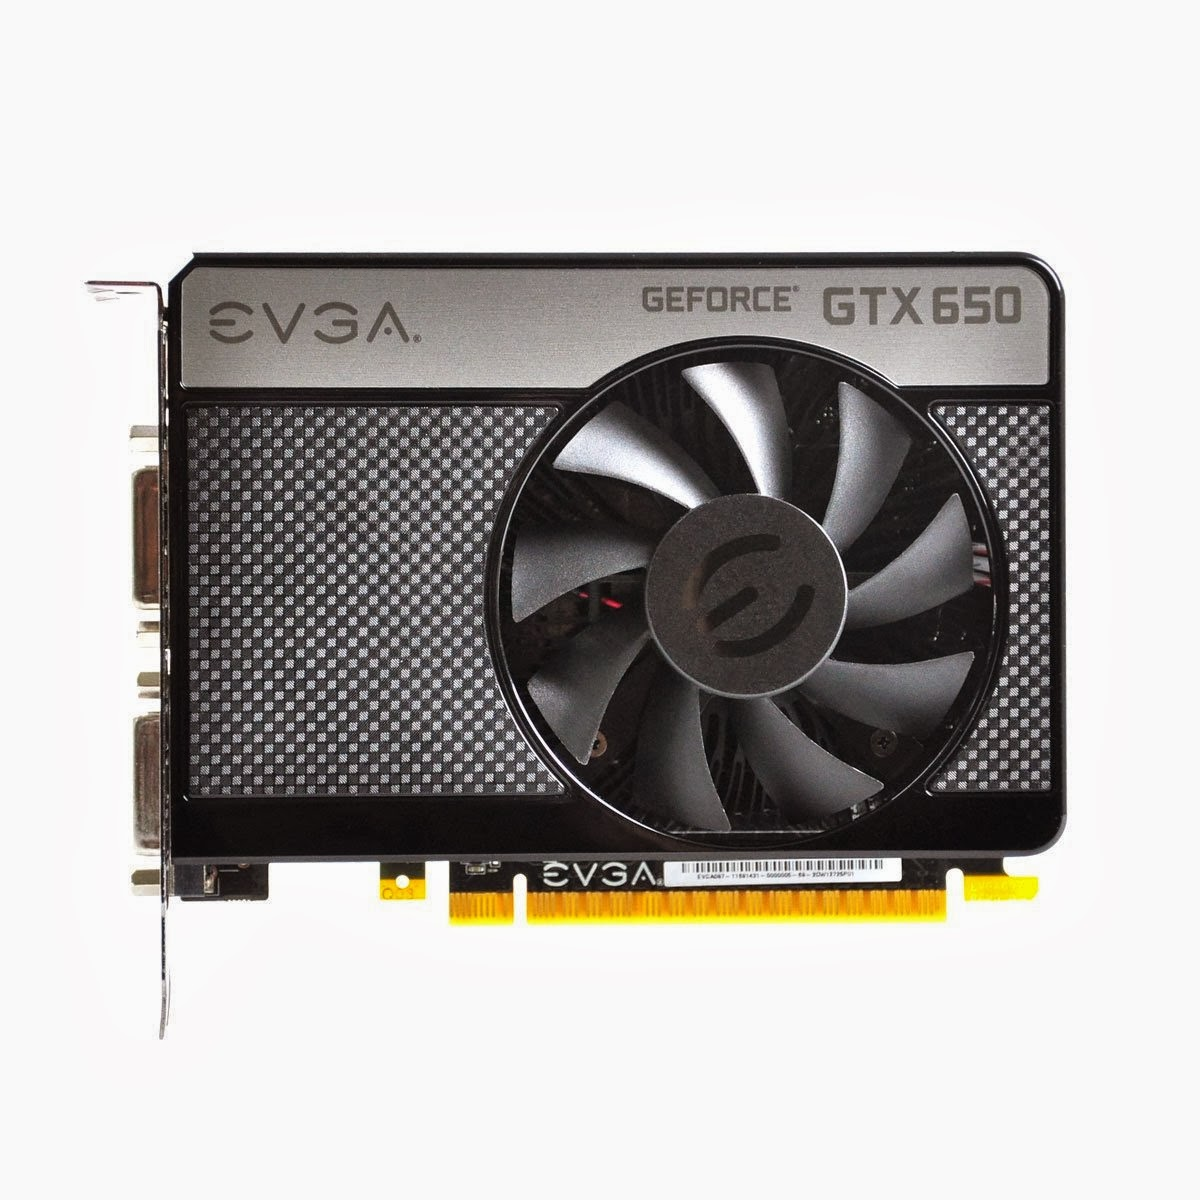 Best Low Power Graphics Card for Gaming